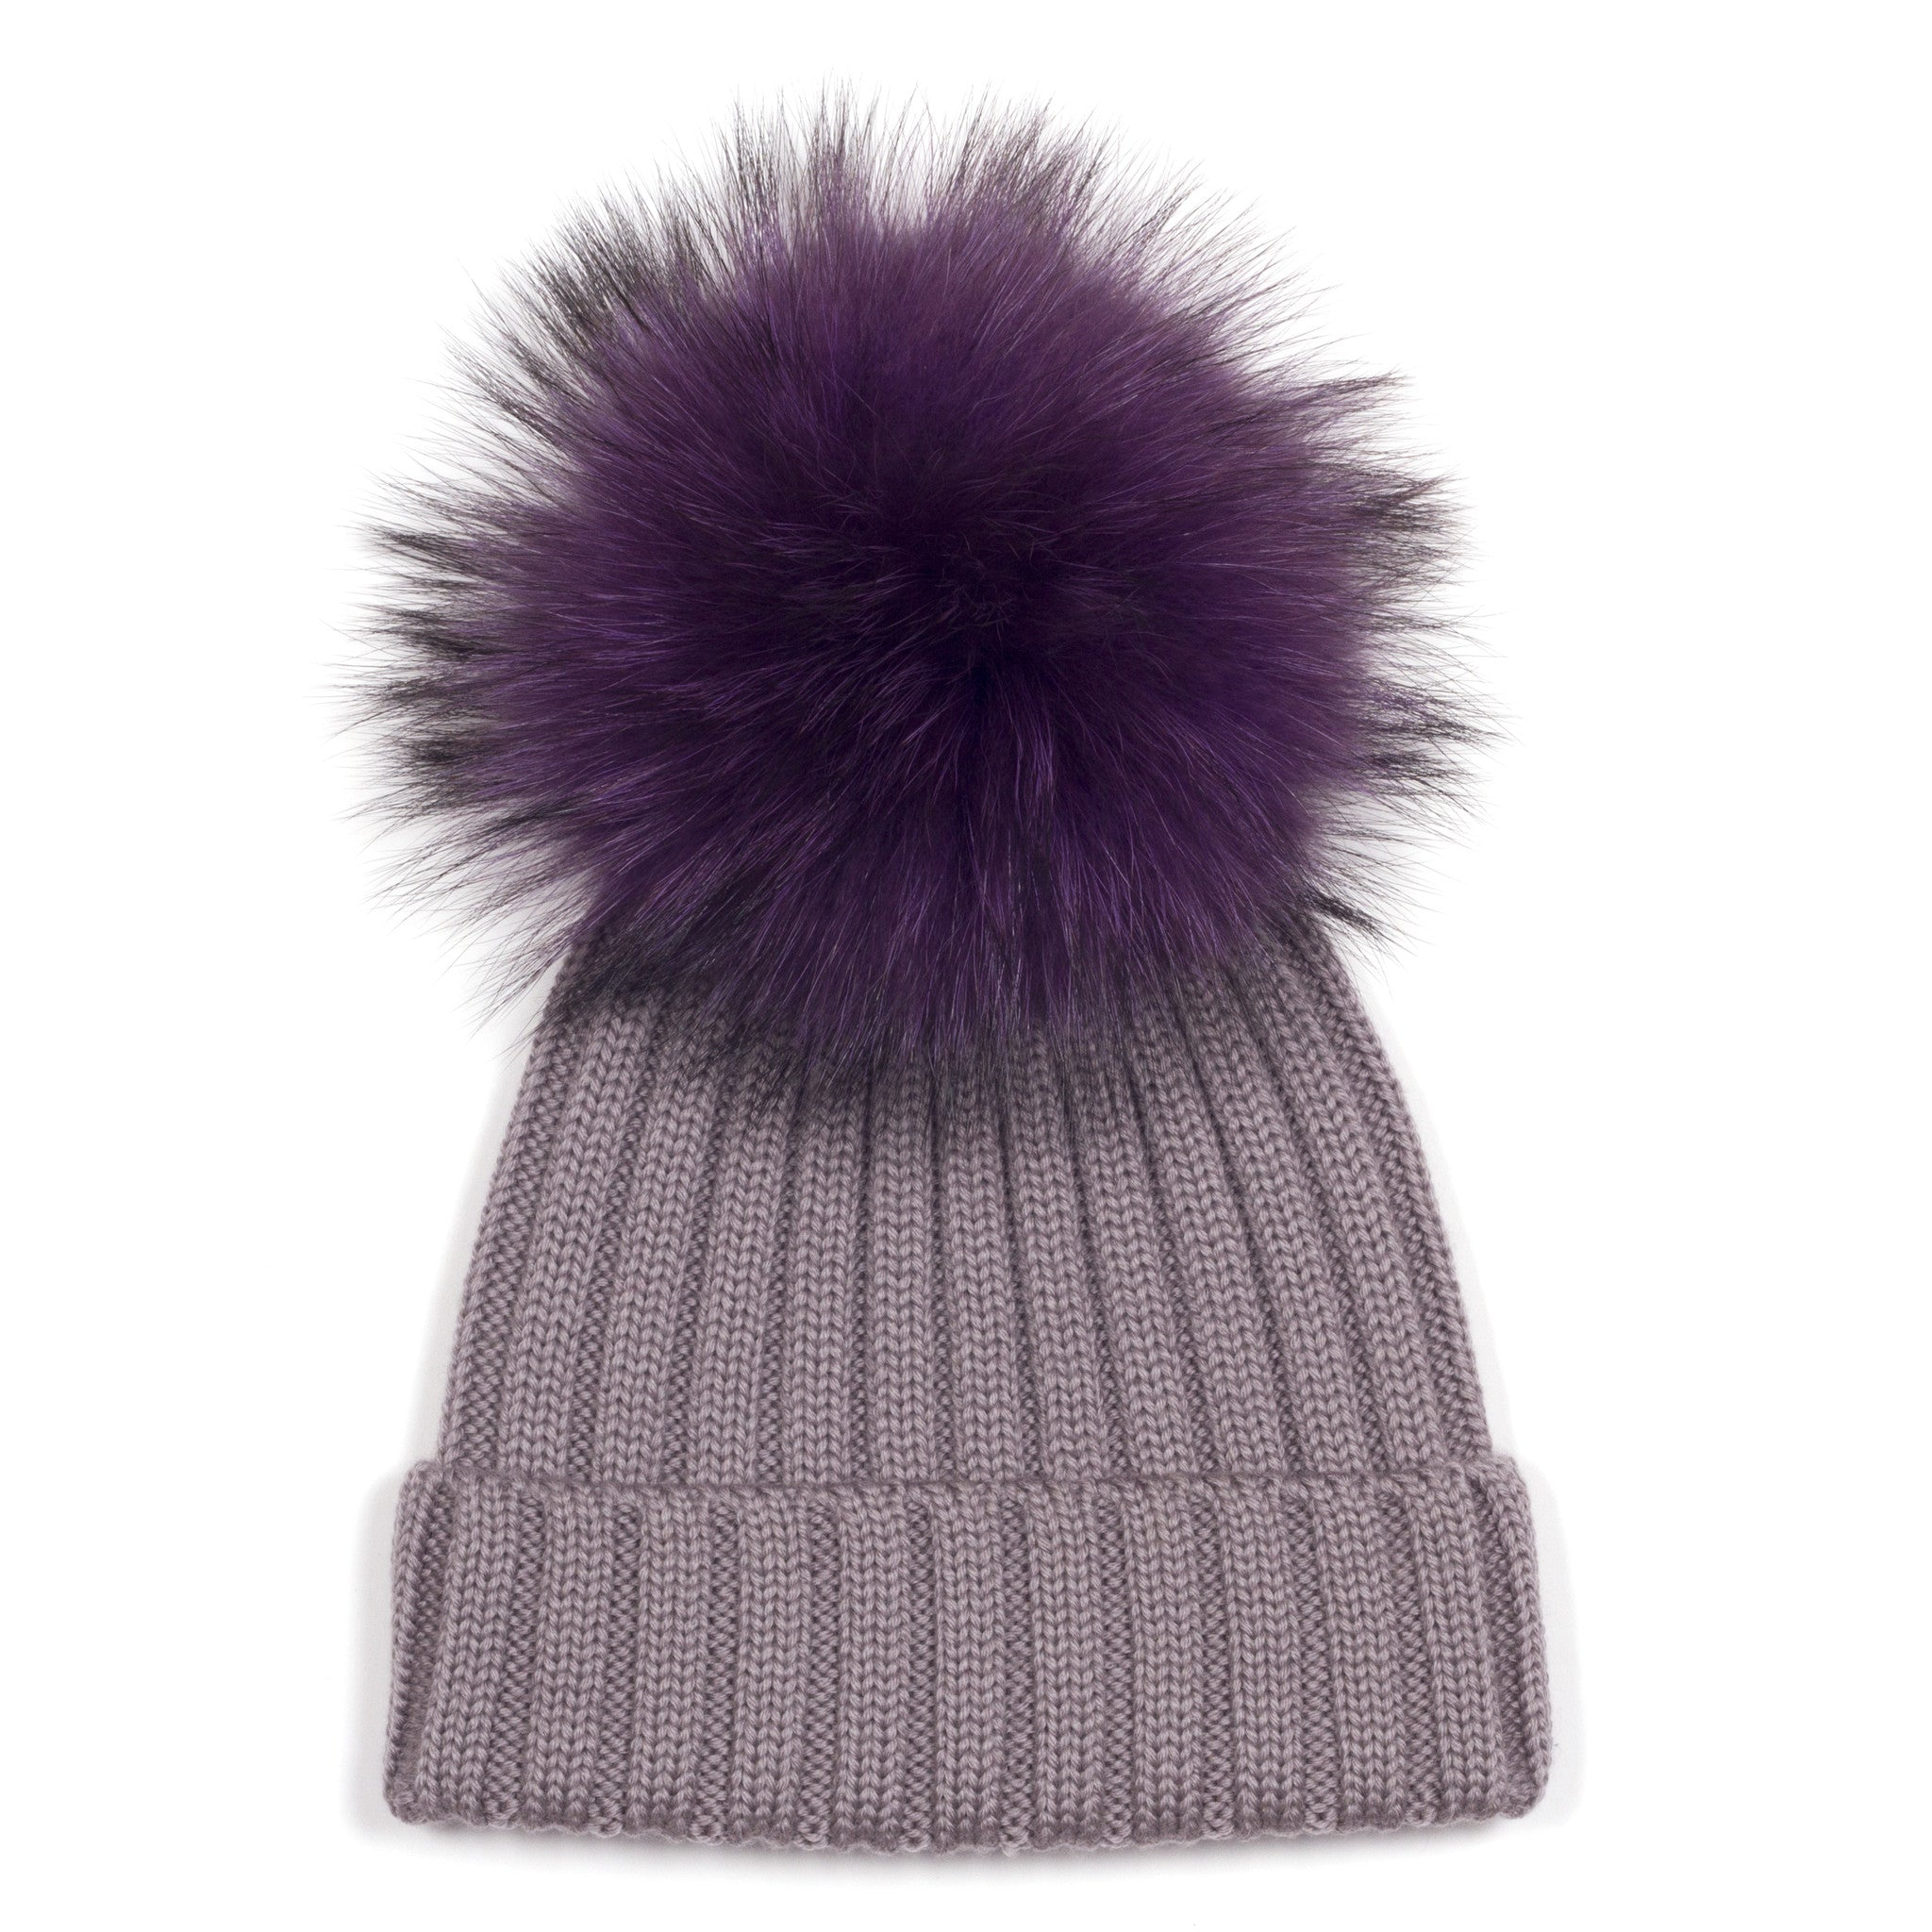 11634c09523 ... Charcoal Grey Single Bobble Hat